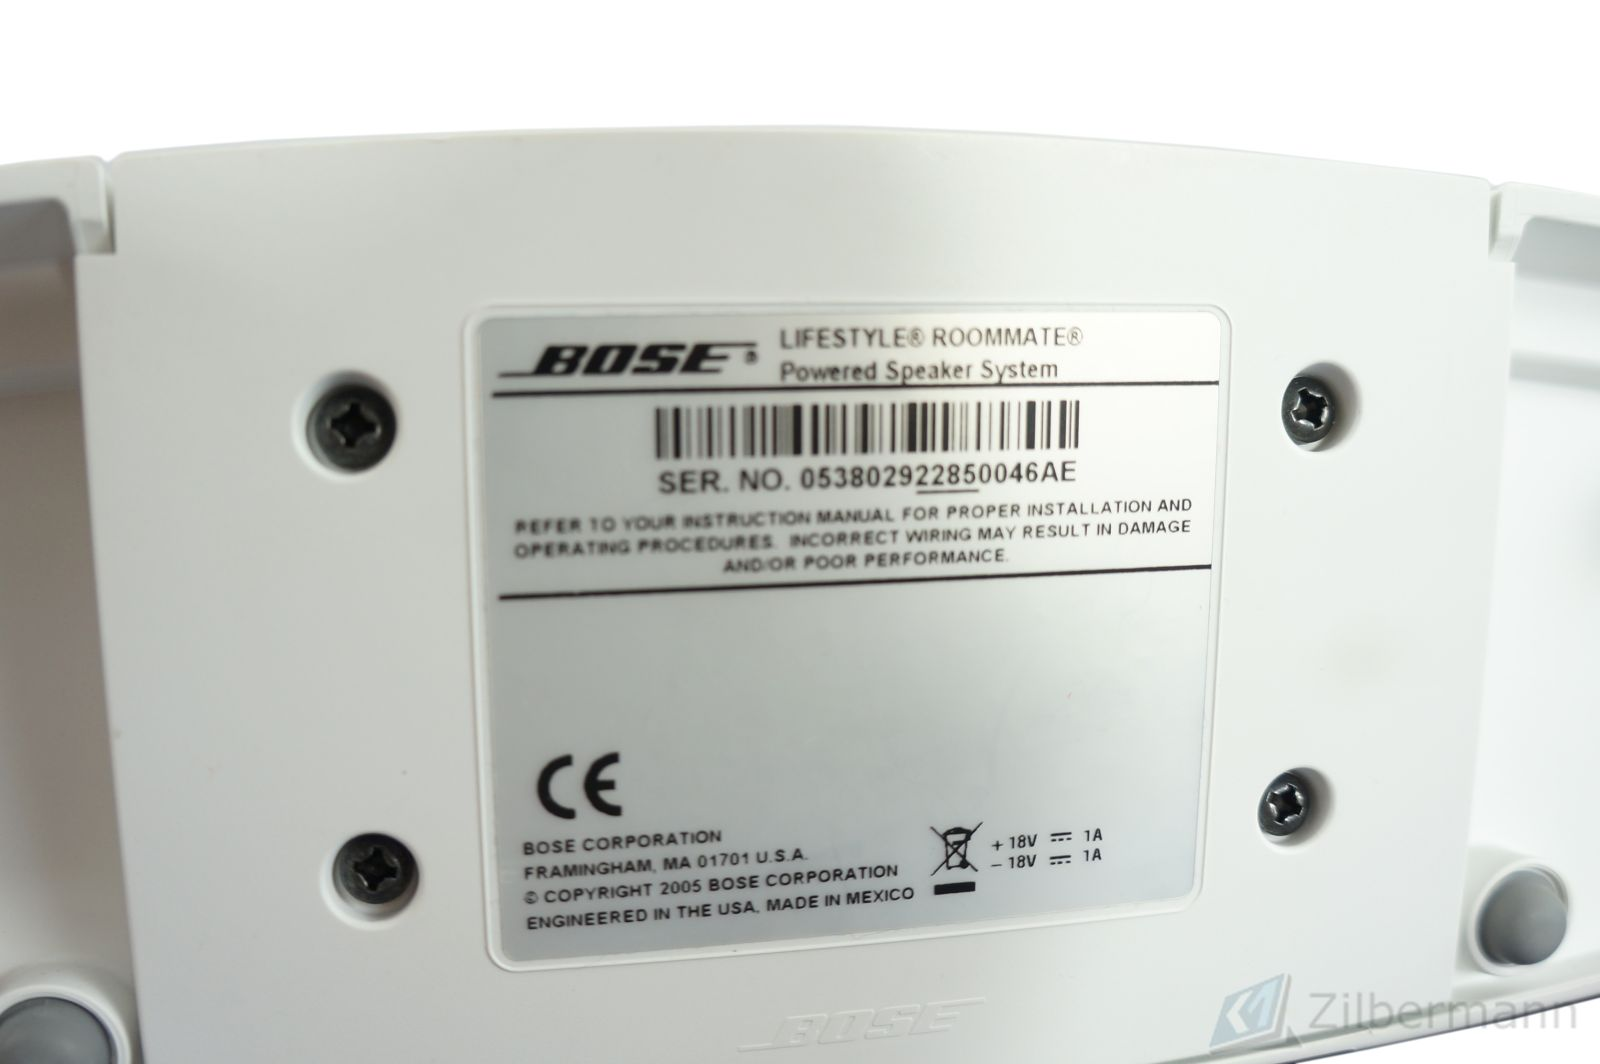 Bose_Lifestyle_Roommate_Powered_Speaker_System_Weiss_05_ryCQ07D